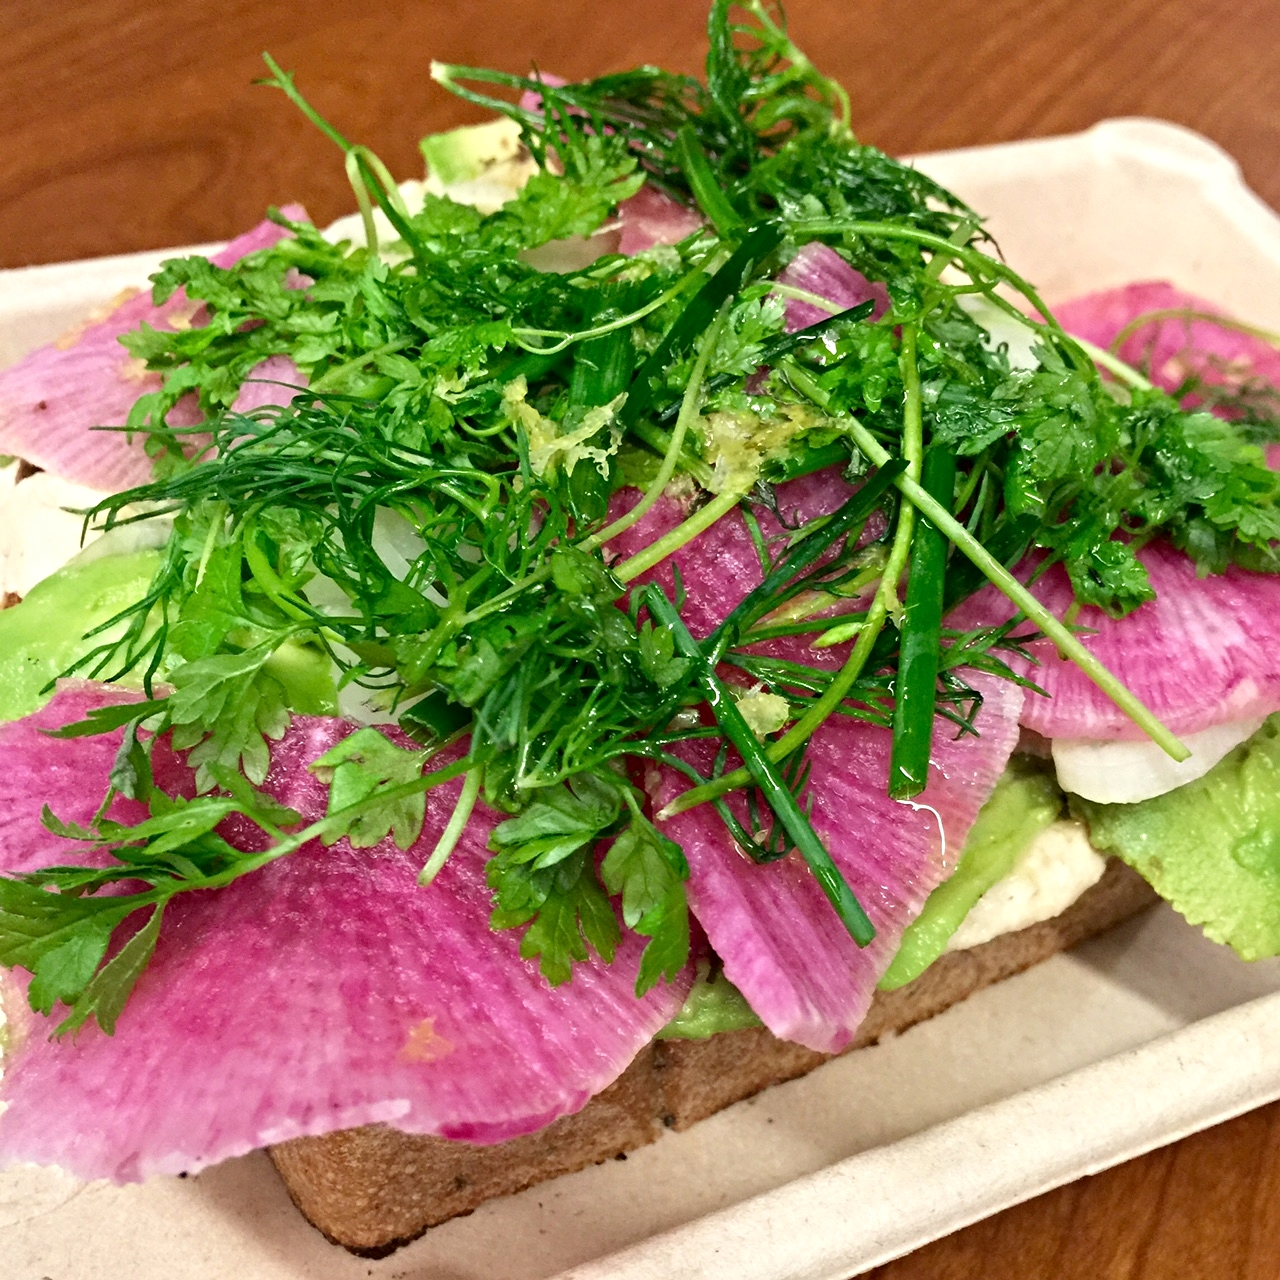 8 healthy lunches in downtown San Francisco